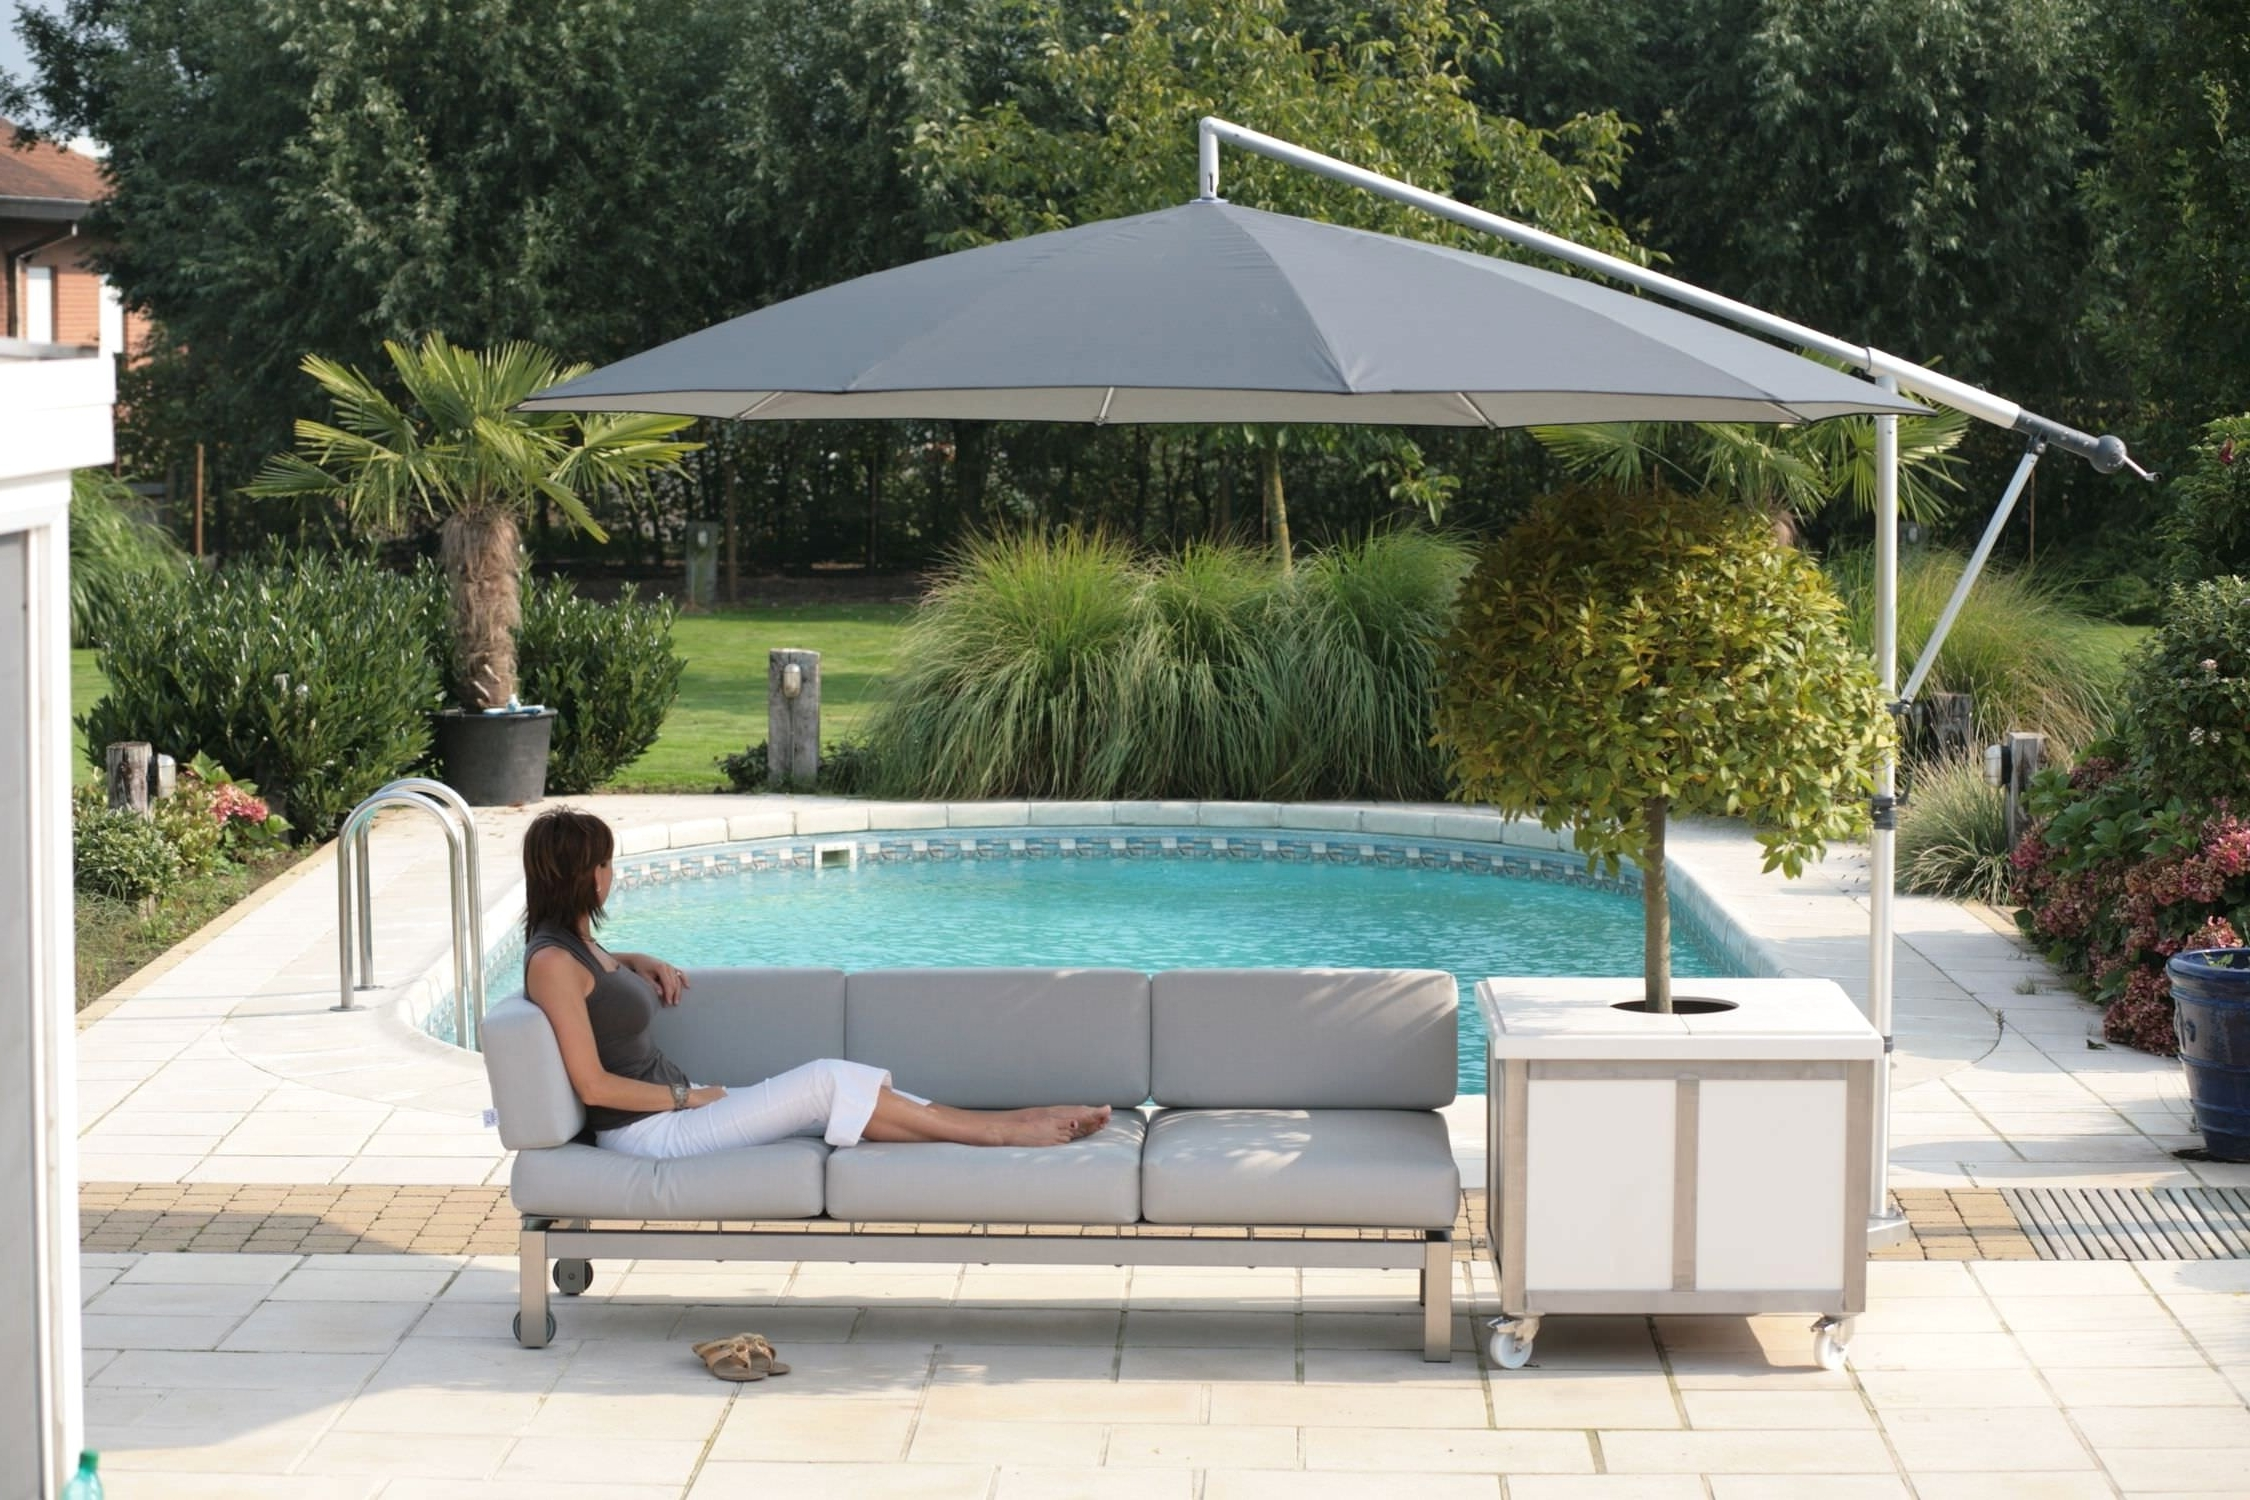 How To Clean Patio Umbrella Awesome Your Unusual Patio Ideas Part 4 Intended For 2019 Unusual Patio Umbrellas (View 10 of 20)